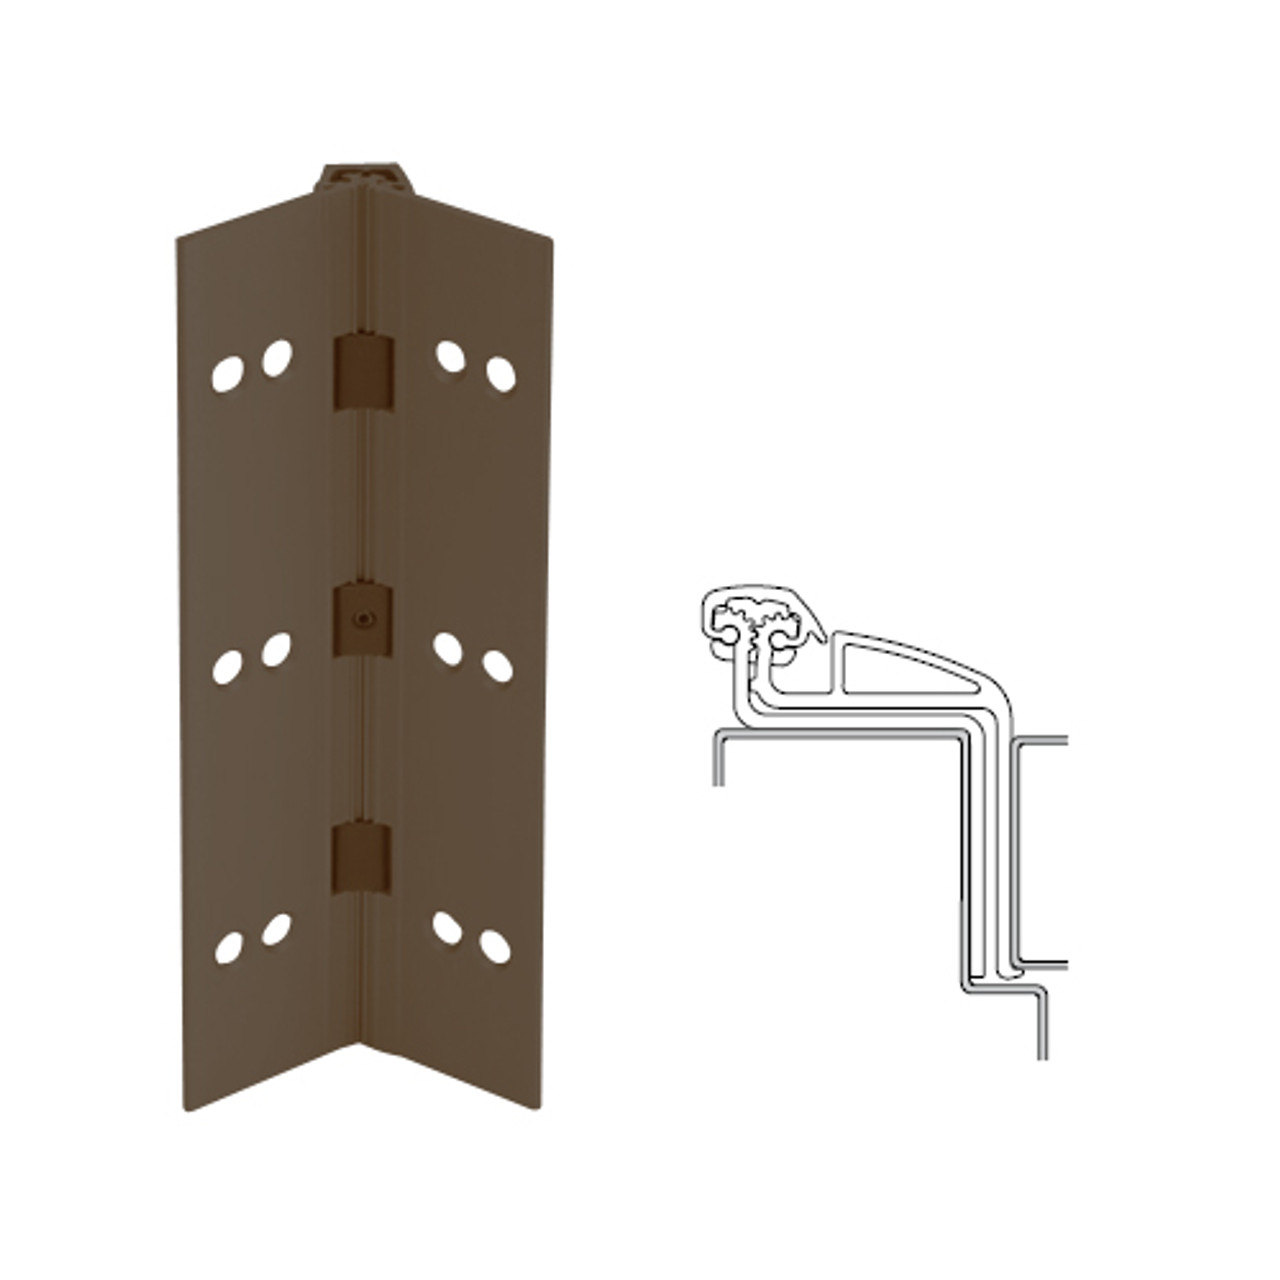 041XY-313AN-83-SECHM IVES Full Mortise Continuous Geared Hinges with Security Screws - Hex Pin Drive in Dark Bronze Anodized